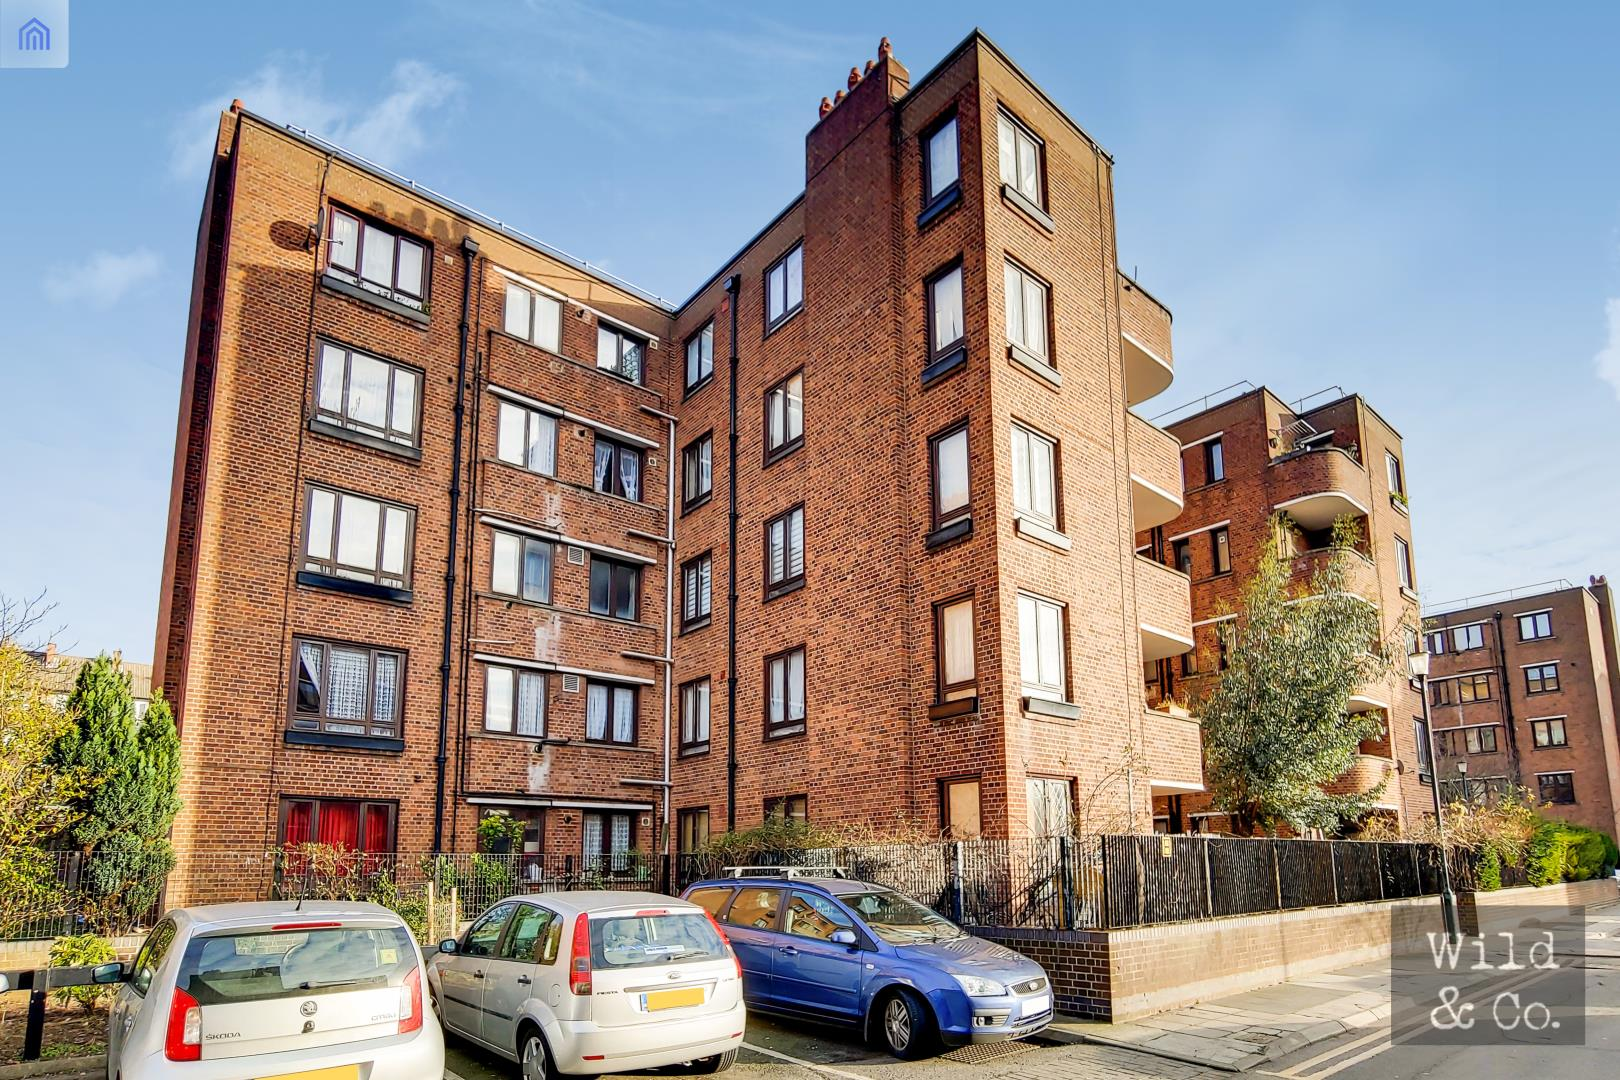 Hackney 'Among Most Expensive London Boroughs'